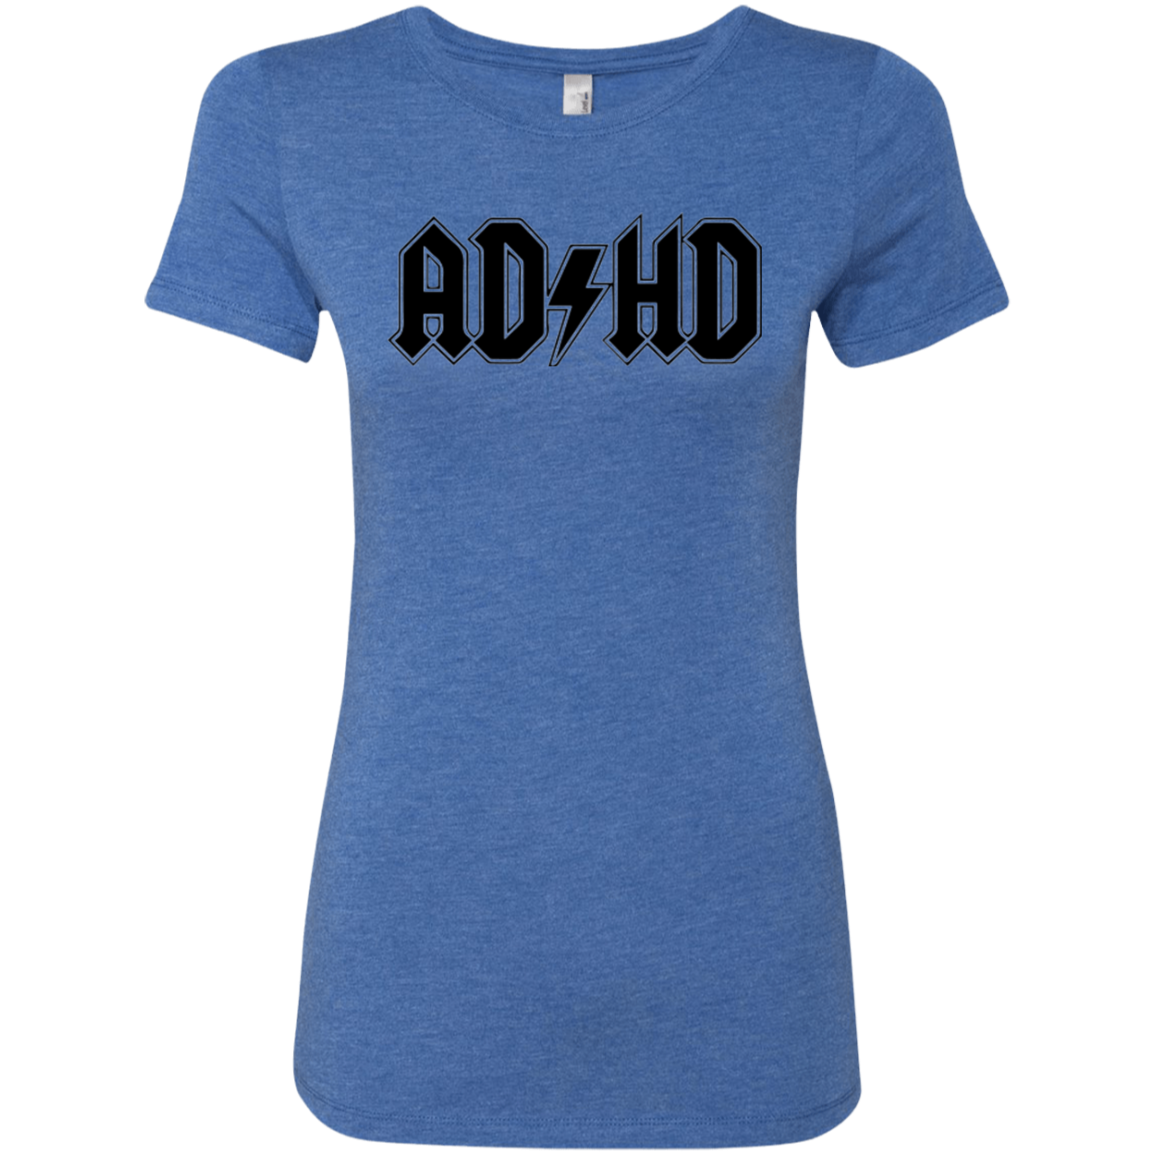 ADHD acdc Women's Classic Tee - Trendy Tees